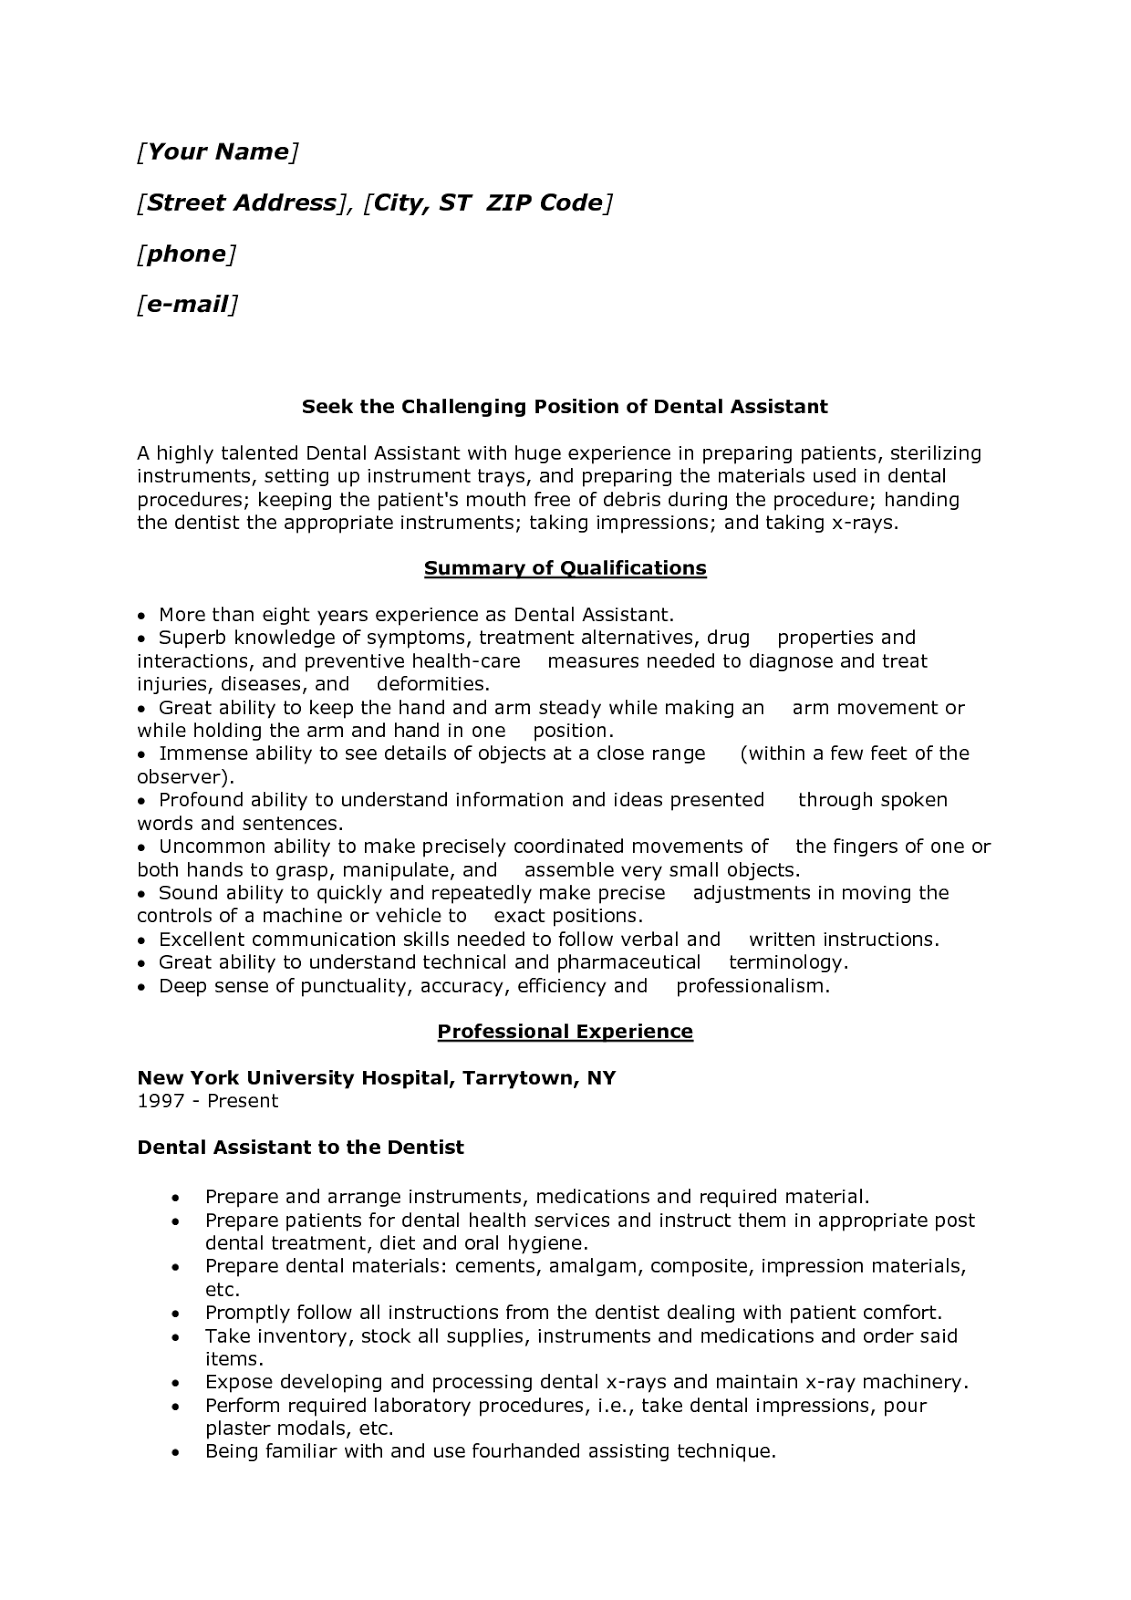 Best american essays taps alumni magazines umagazinology resume cover letter pharmacy technician resume examples with experience pharmacy technician objective for resume sample madrichimfo Gallery